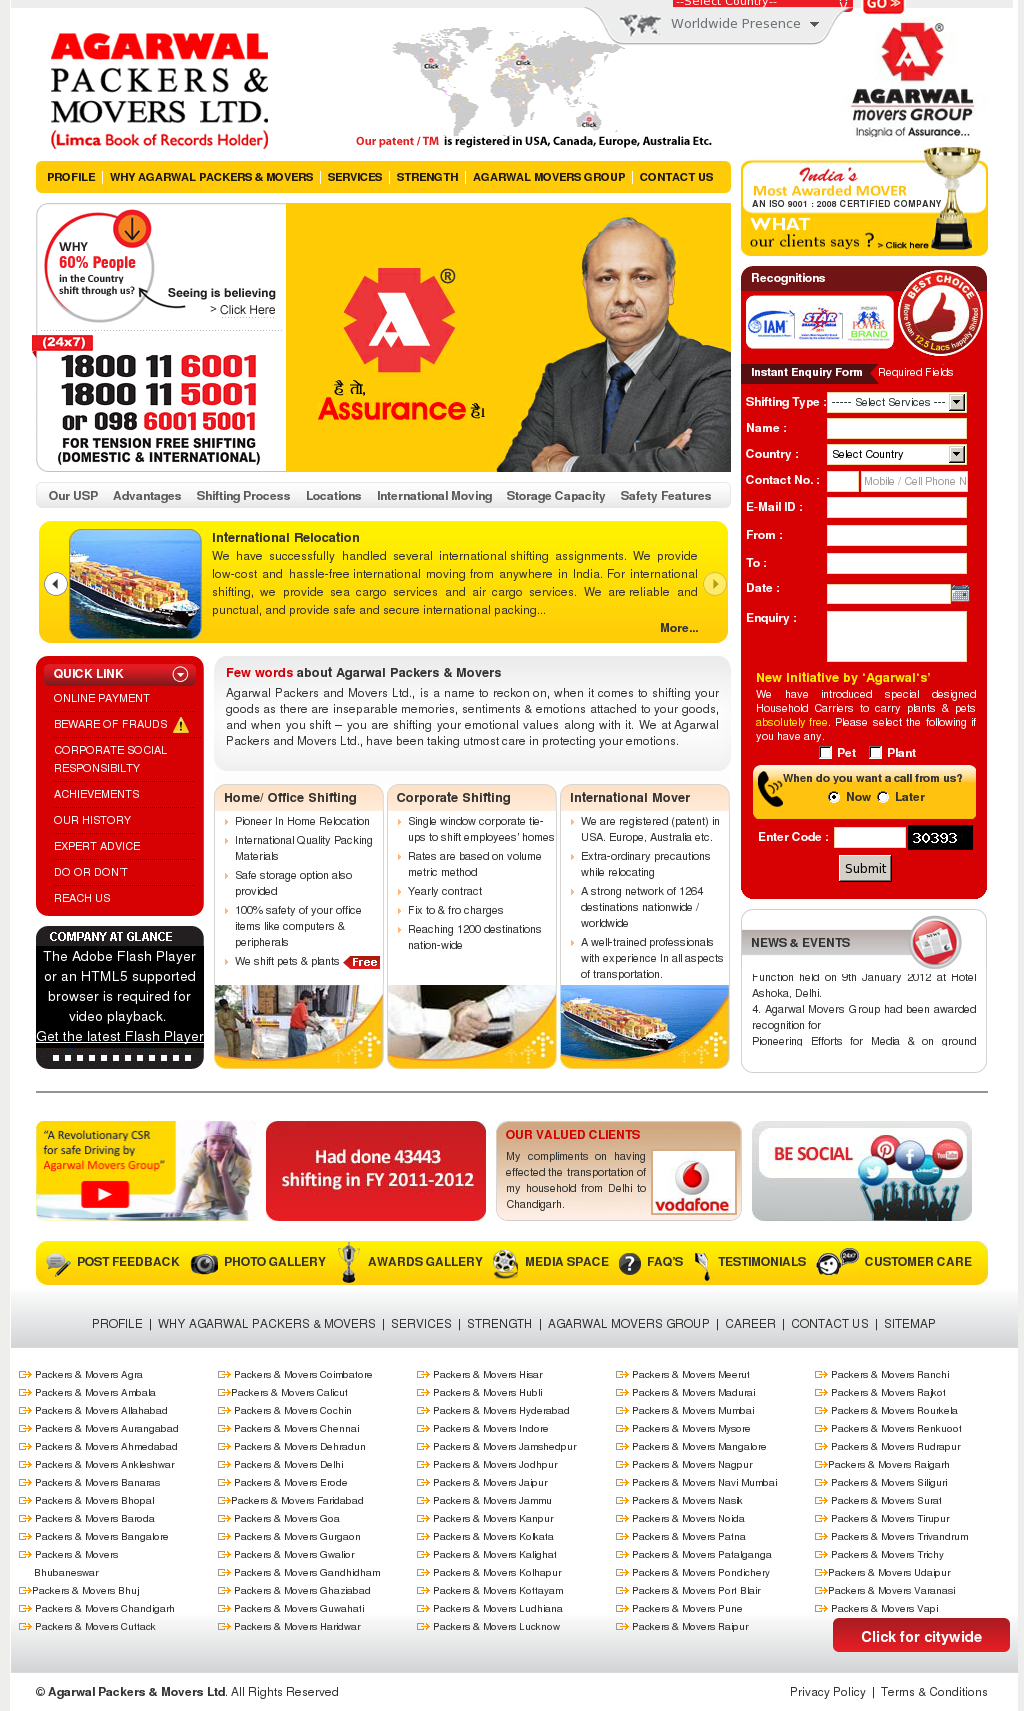 Agarwal Packers and Movers Competitors, Revenue and